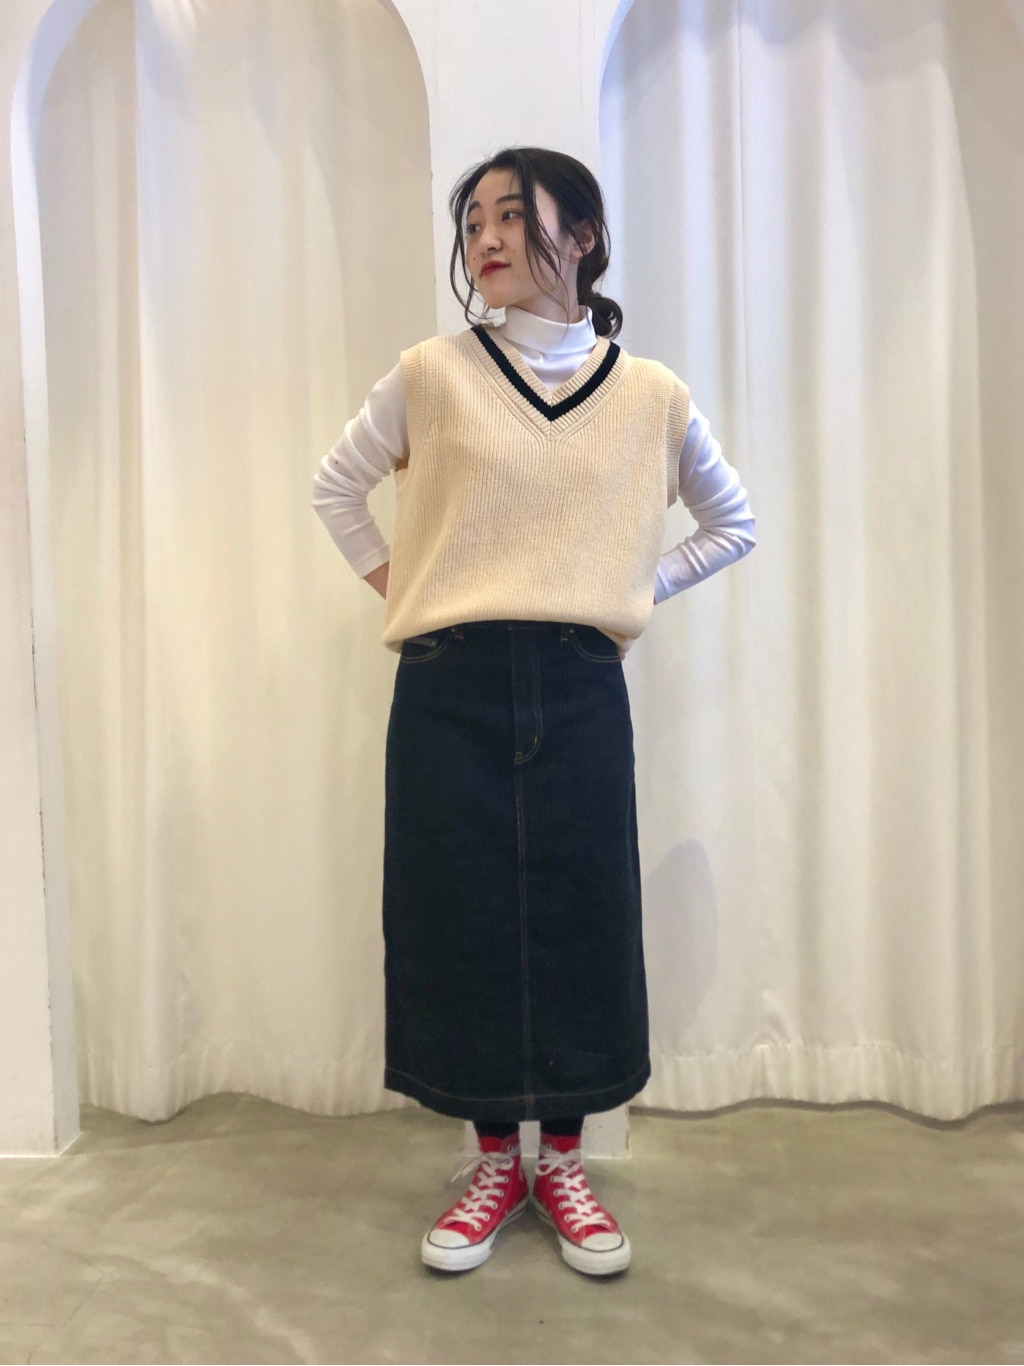 Dot and Stripes CHILD WOMAN ラフォーレ原宿 身長:153cm 2021.02.18